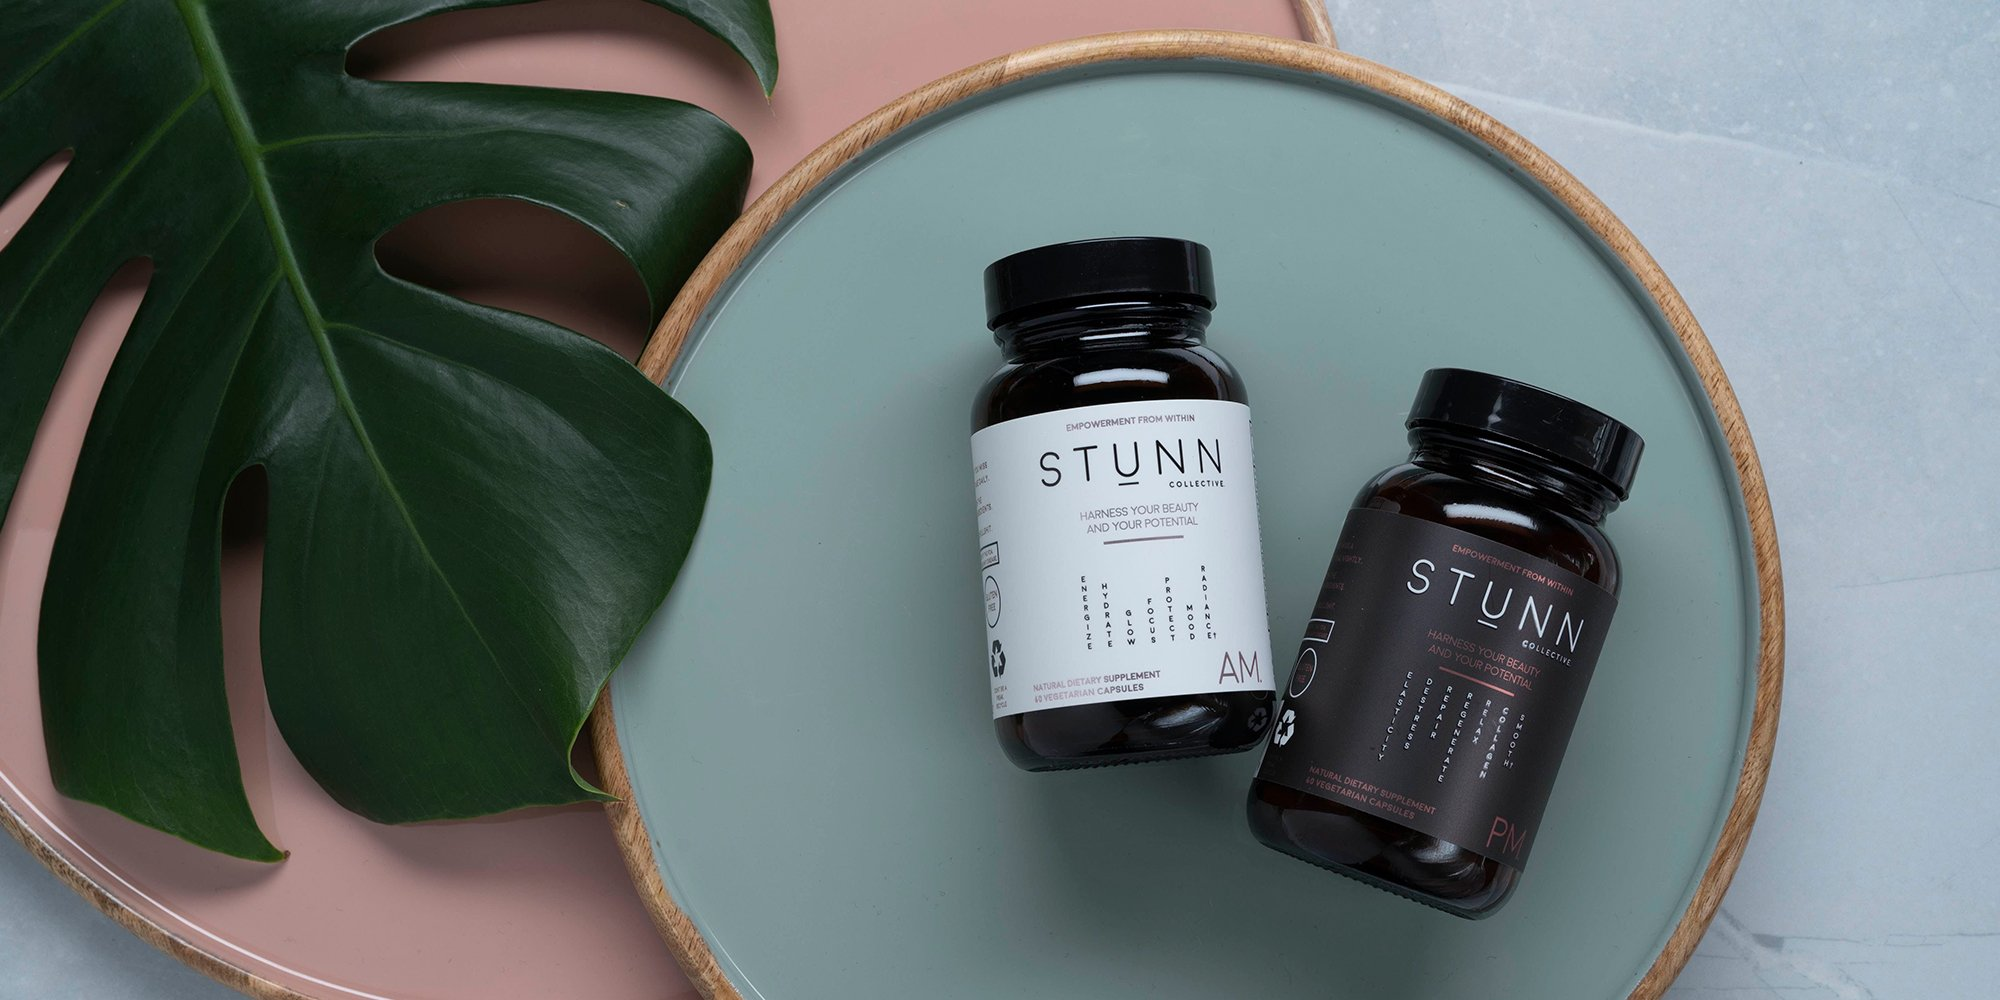 This New Beauty And Wellness Vitamin Brand Wants You To Think Of Supplementation As Self-Care